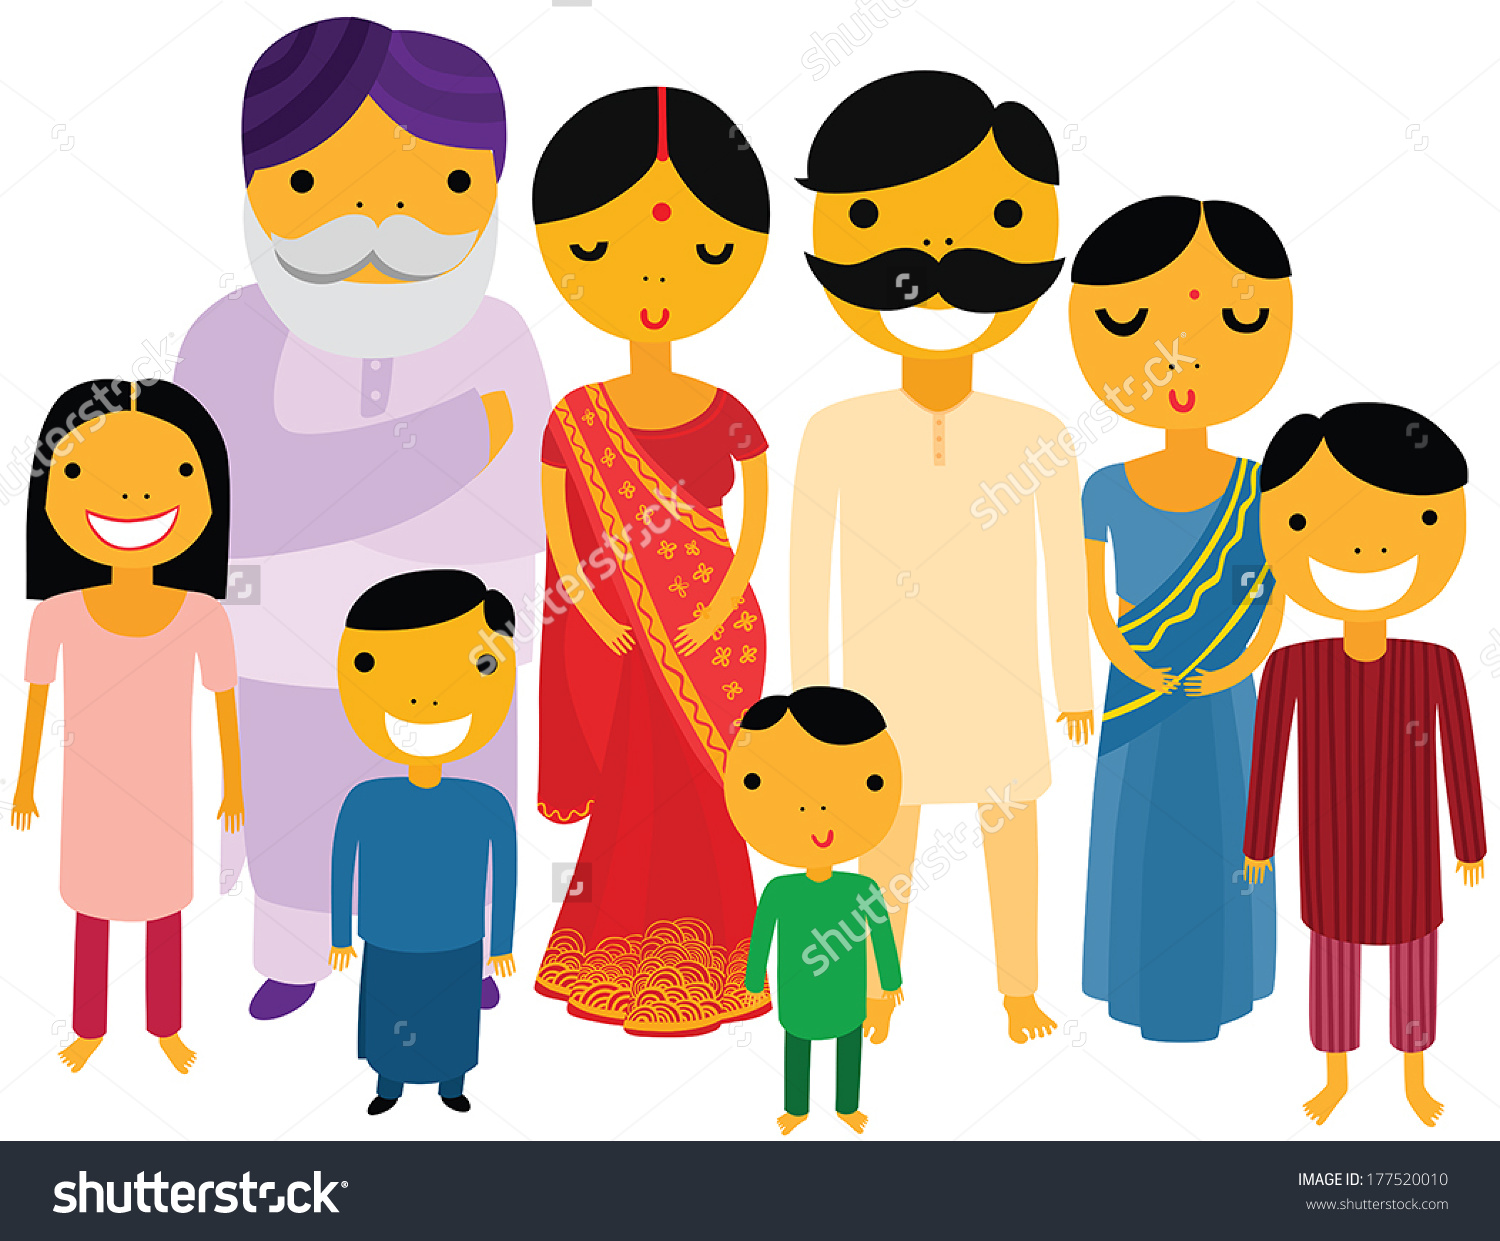 Traditional indian family clipart picture royalty free library Traditional indian family clipart - ClipartFest picture royalty free library